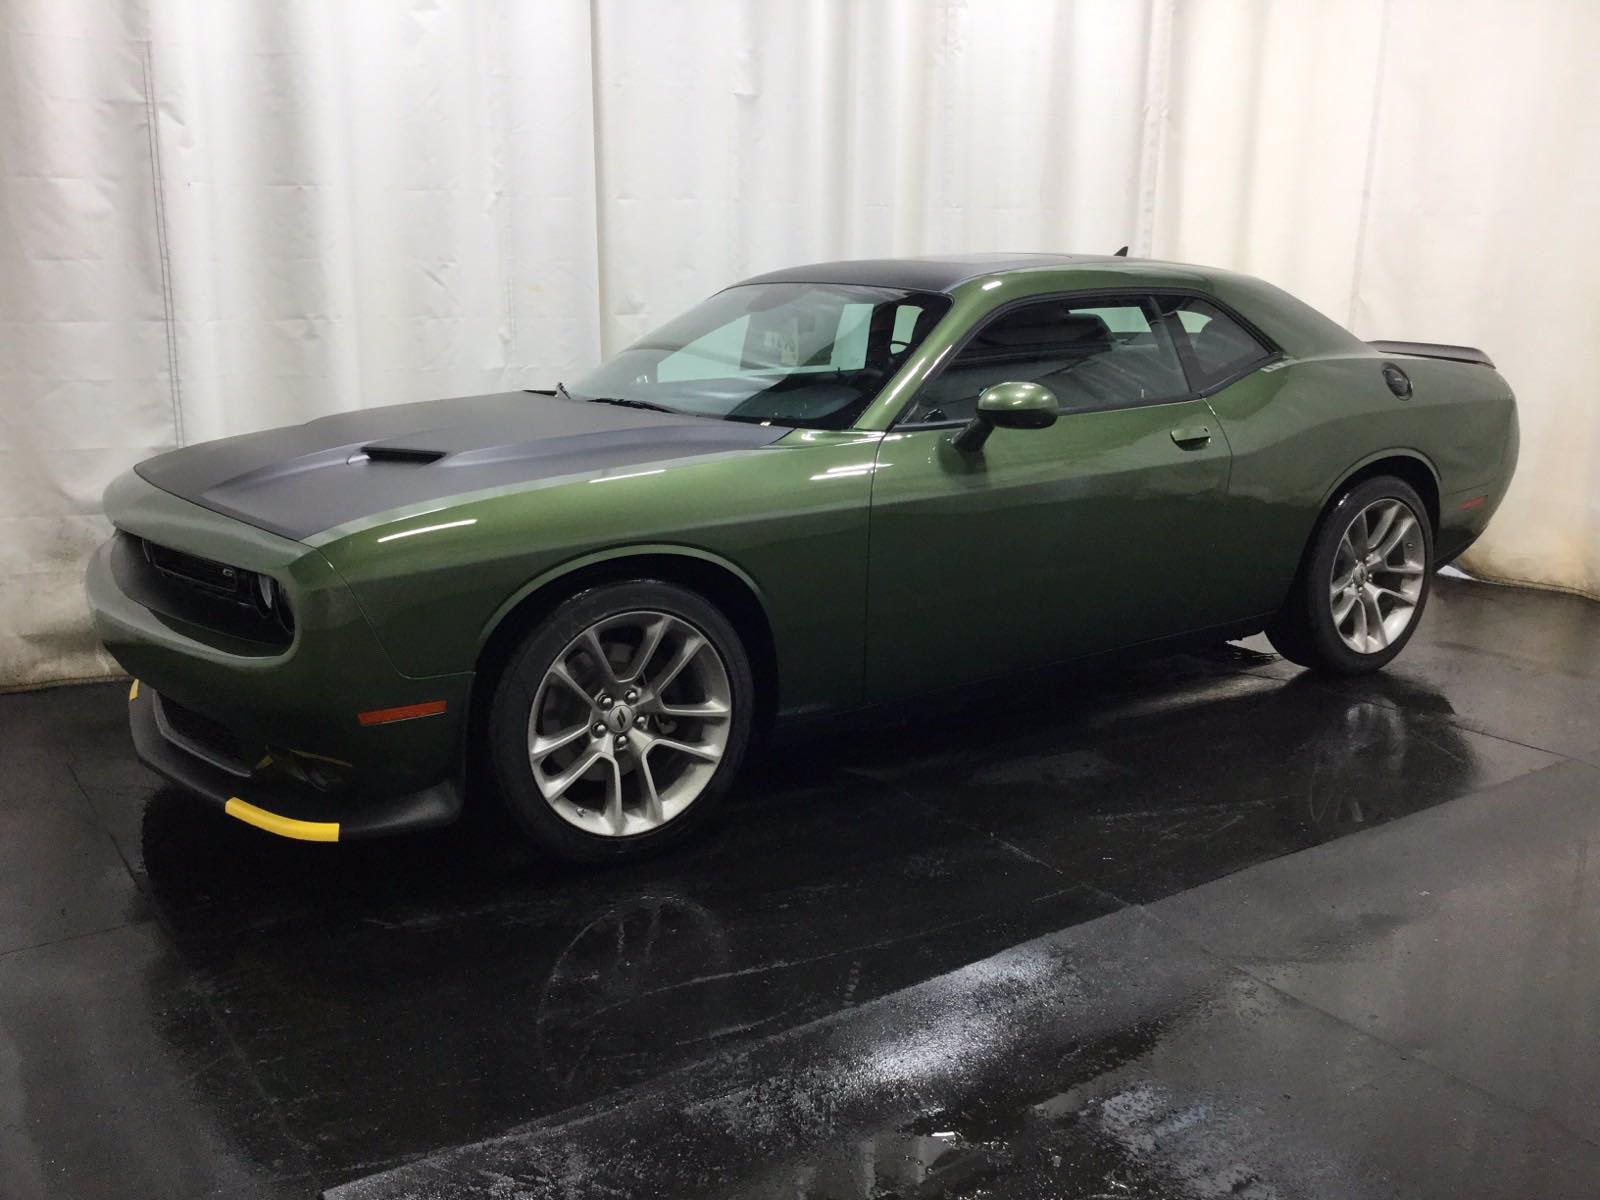 NEW 2020 DODGE CHALLENGER GT 50TH ANNIVERSARY